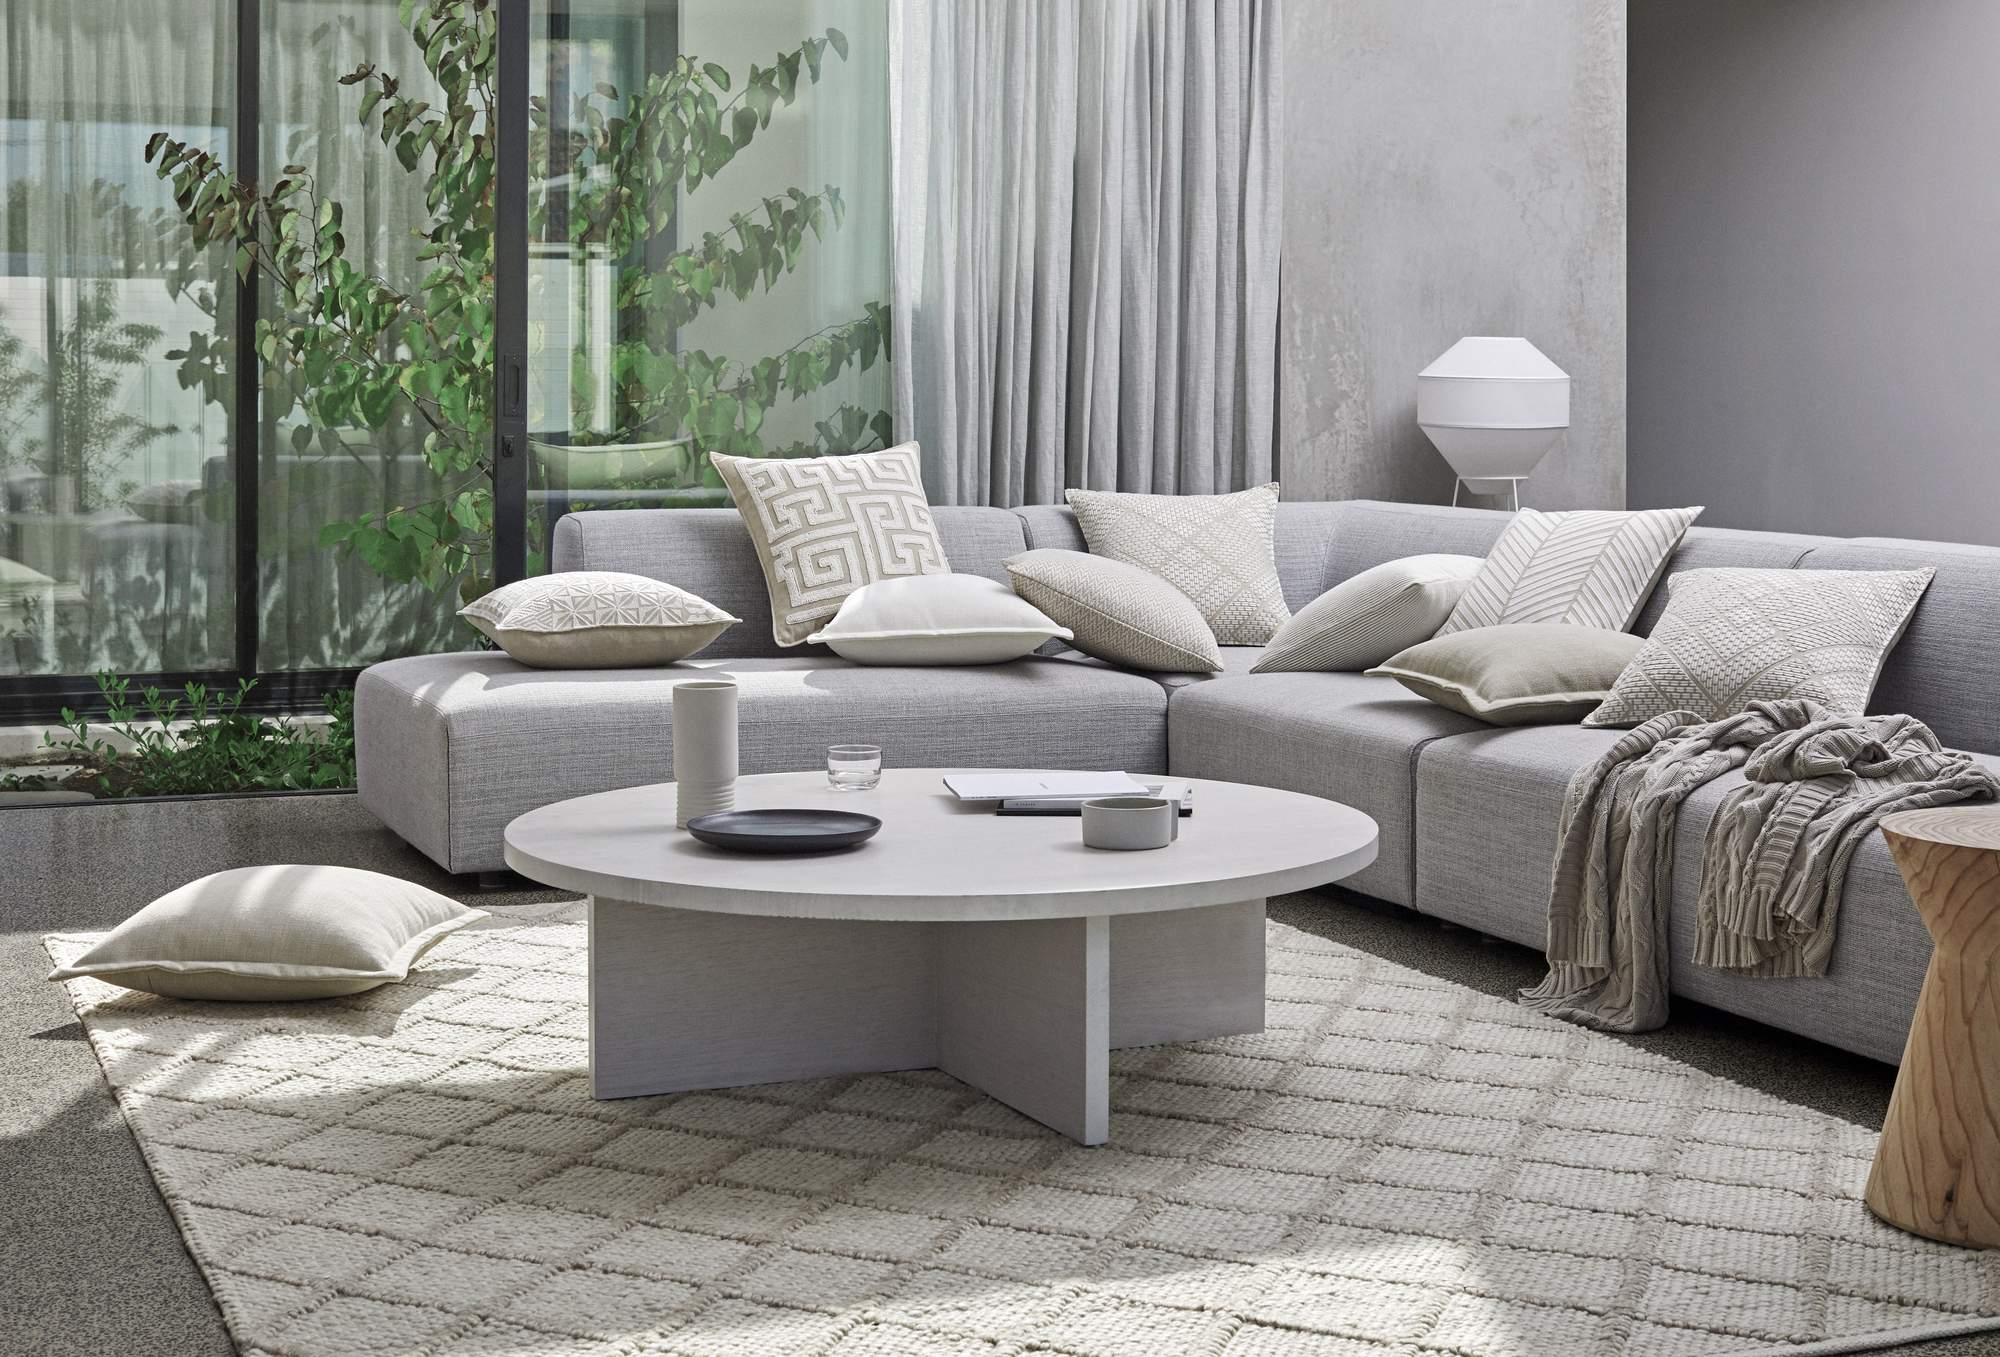 "<span>Shop<br><span style=""font-weight: 600;"">Cushions</span></span>"